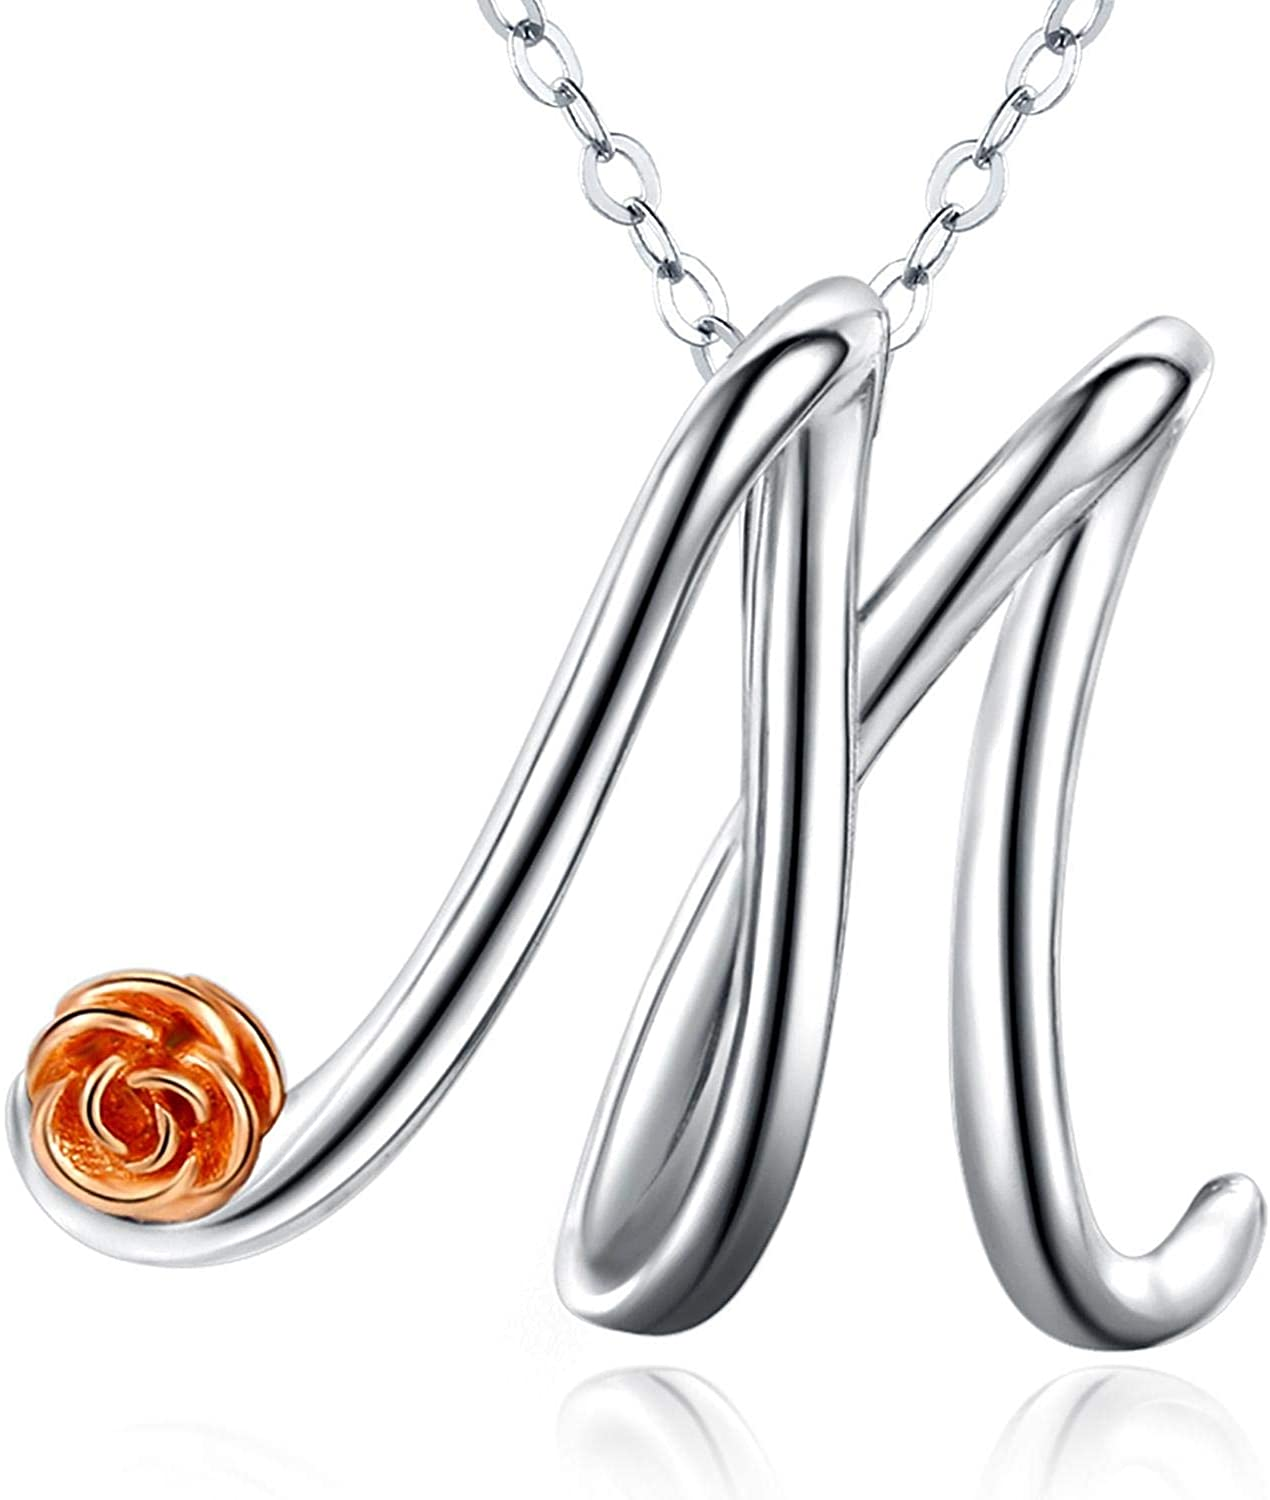 Aniu Initial Letter Necklace for Women, Sterling Silver Cursive Script Name Pendant, Alphabet Personalized Charm Jewelry Gift (Letter M)